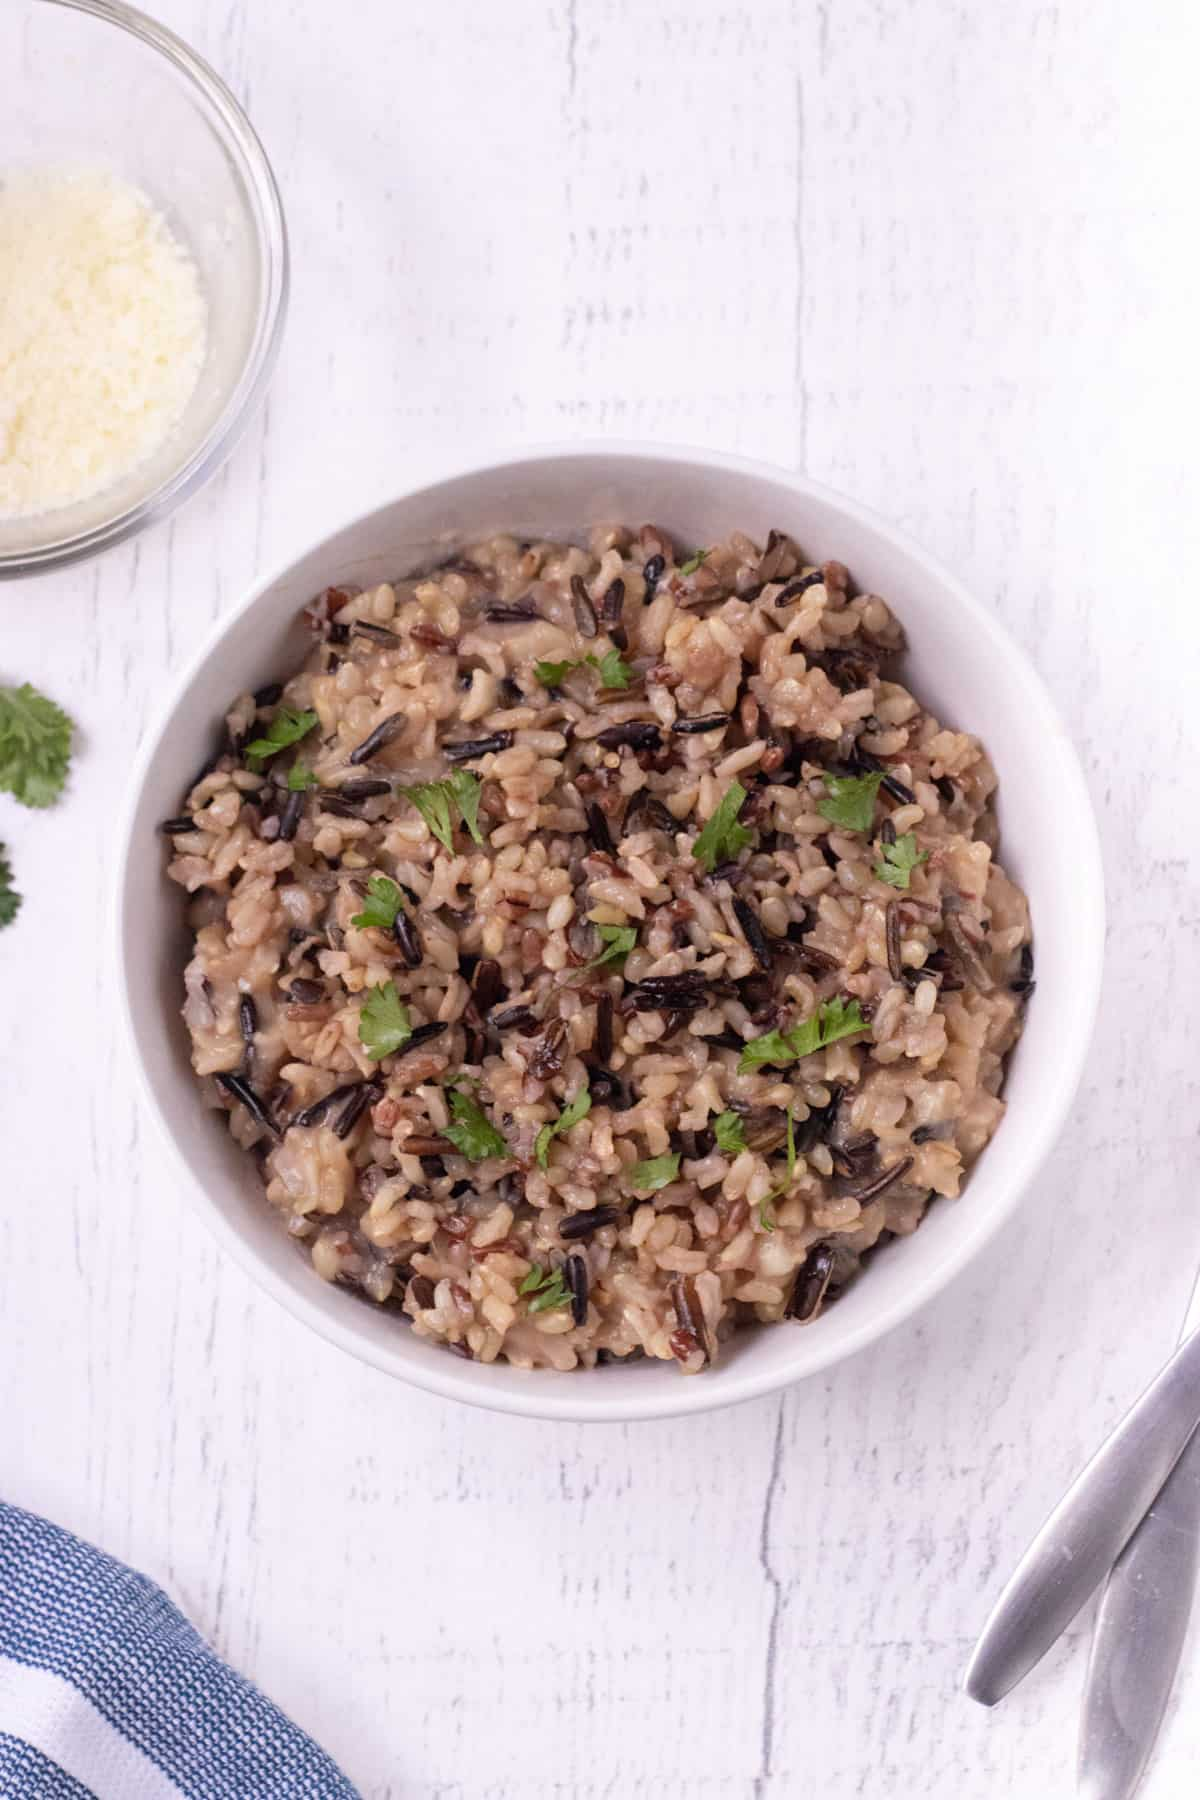 Top view of brown and wild rice in a white bowl with parsley for garnish and a bowl of grated parmesan cheese in upper left corner.